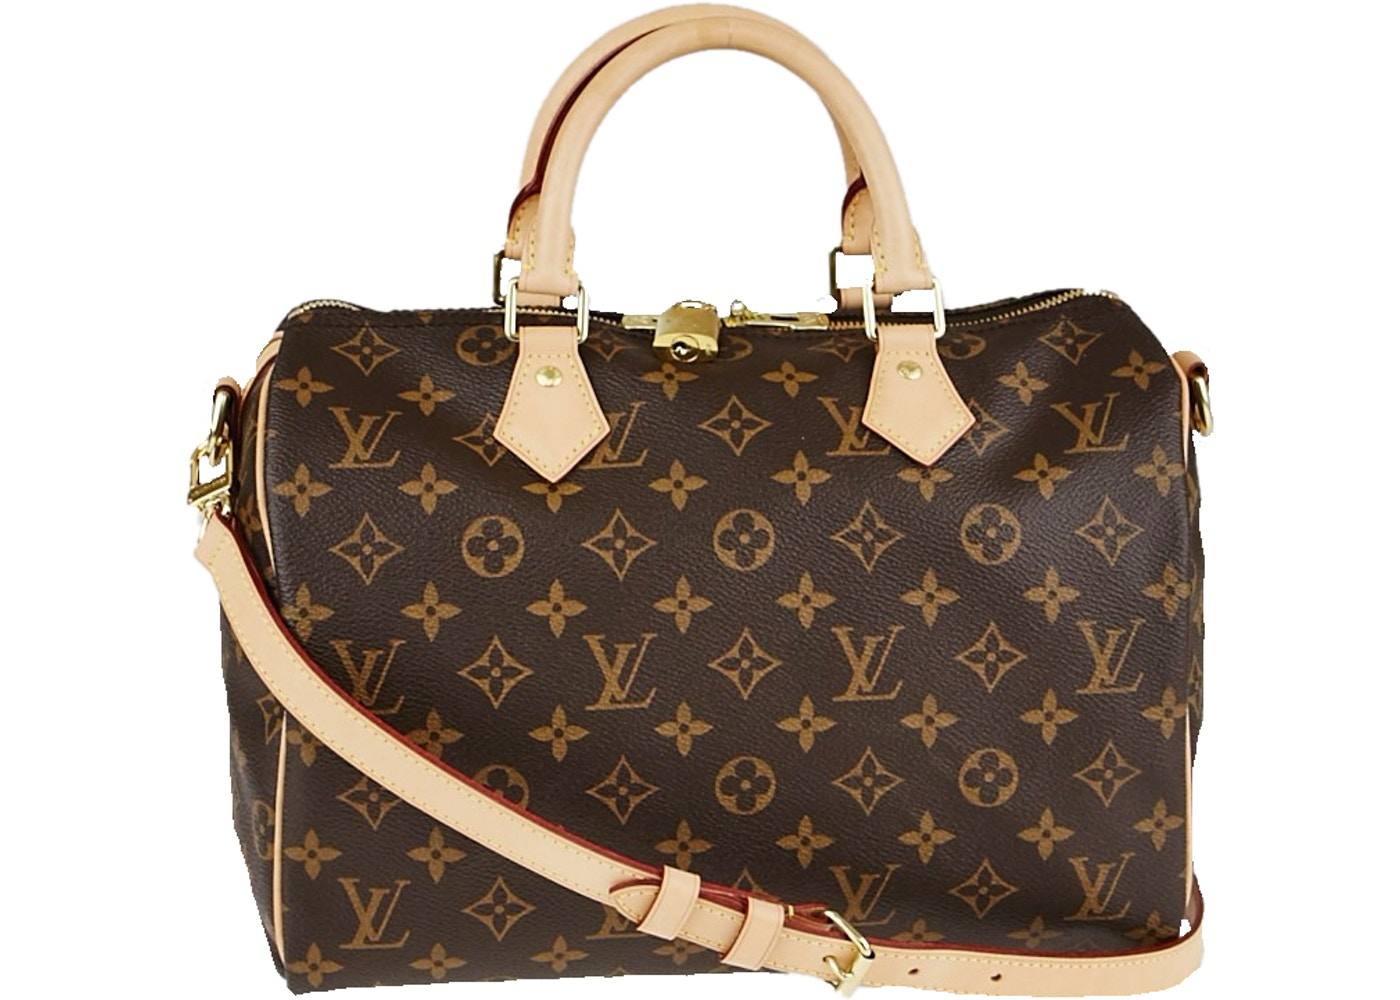 Louis Vuitton Speedy Bandouliere Monogram 30 Brown b372f50f57cae